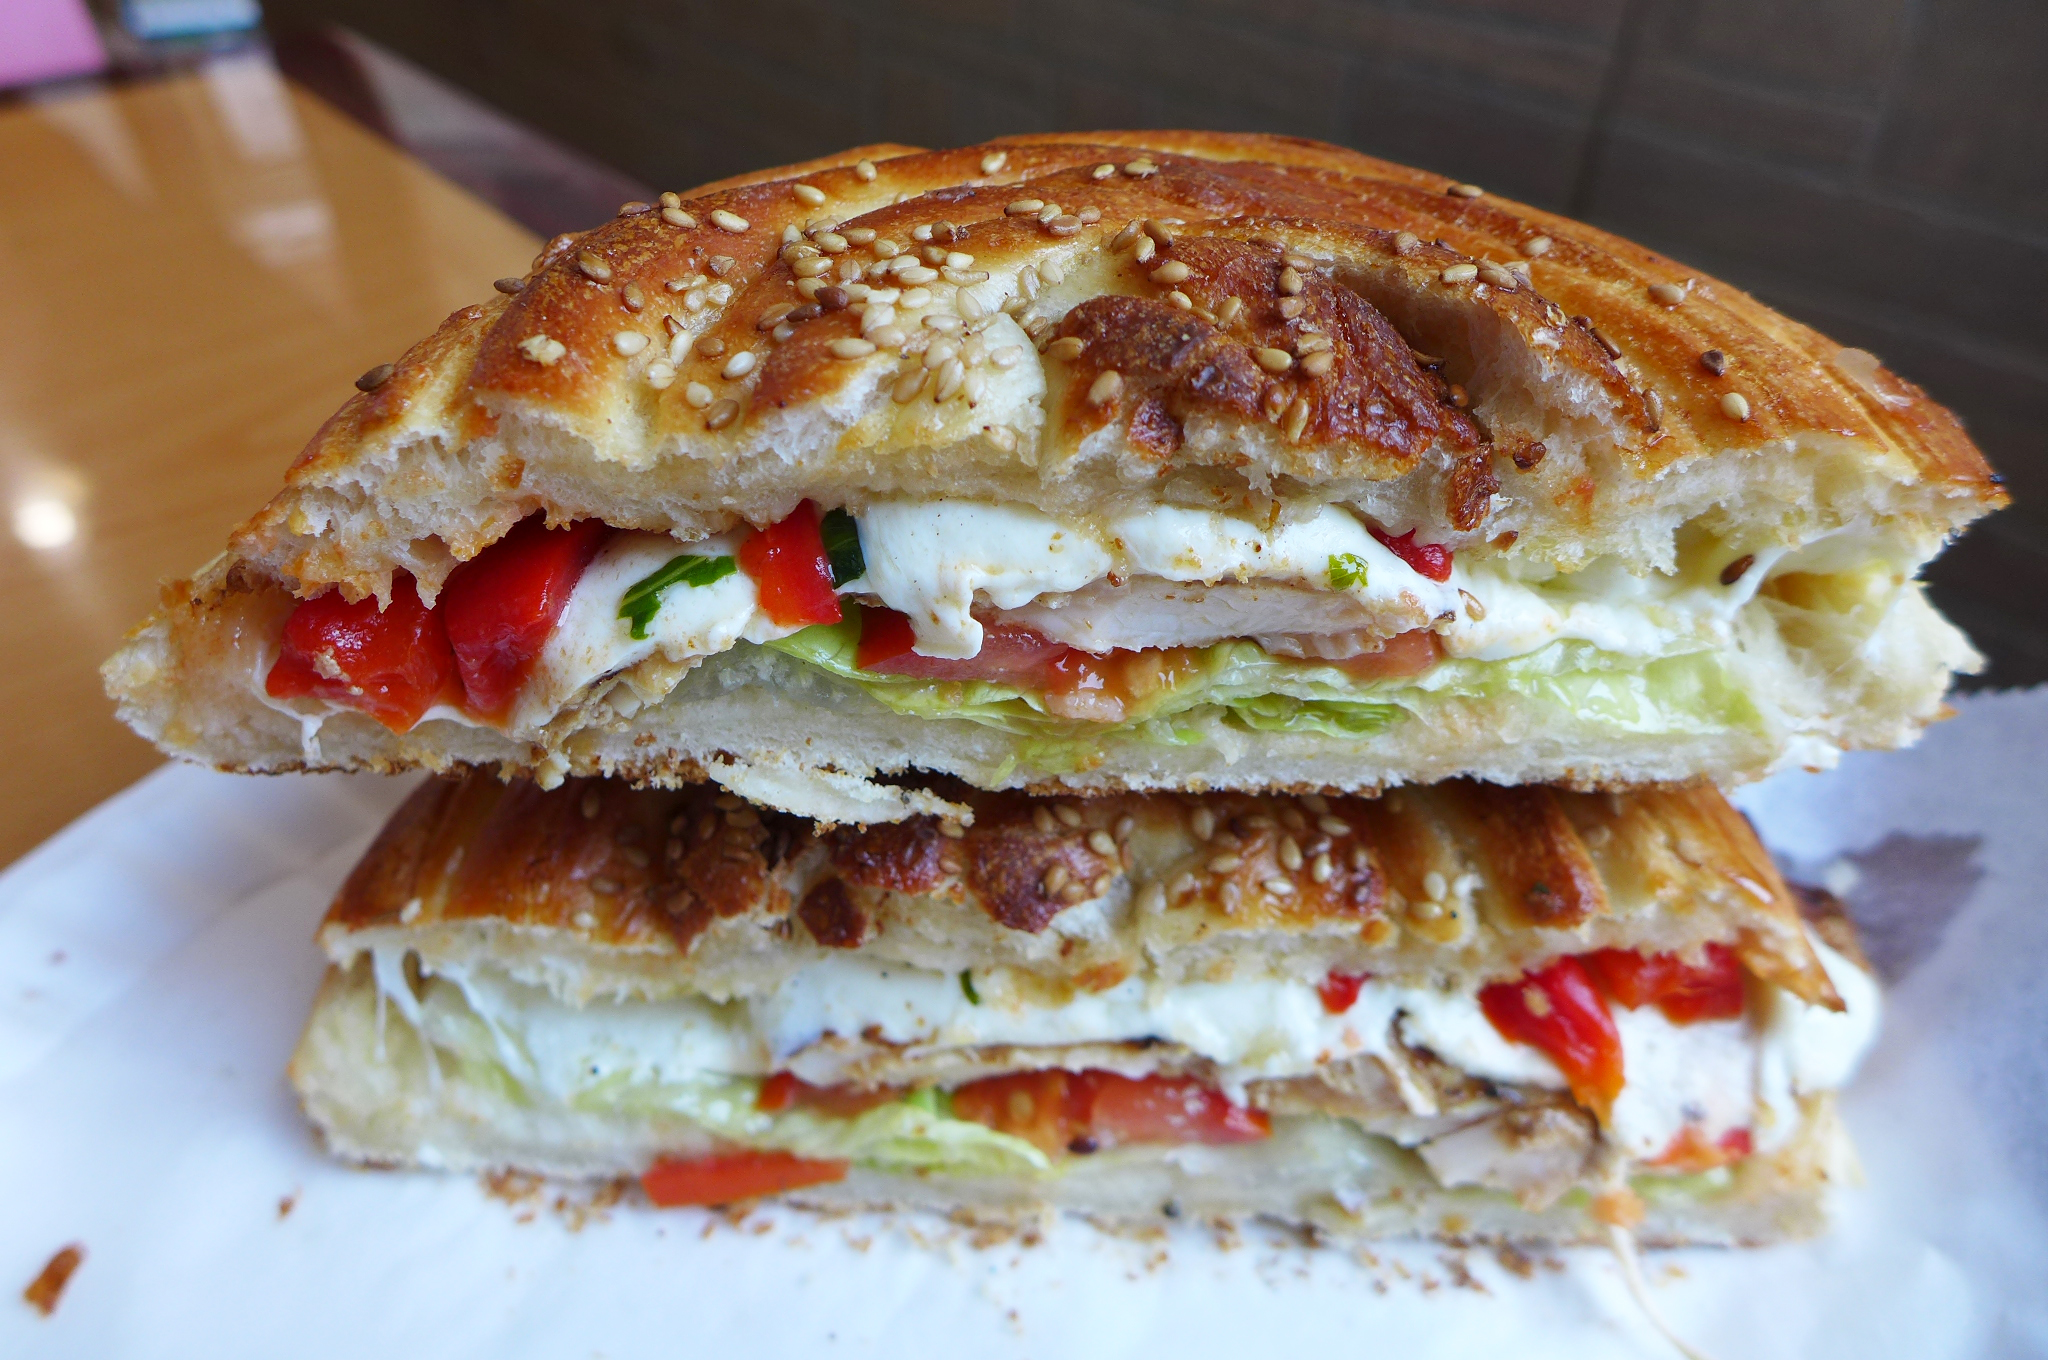 Round sandwich with grilled chicken and mozzarella on a sesame seeded roll...